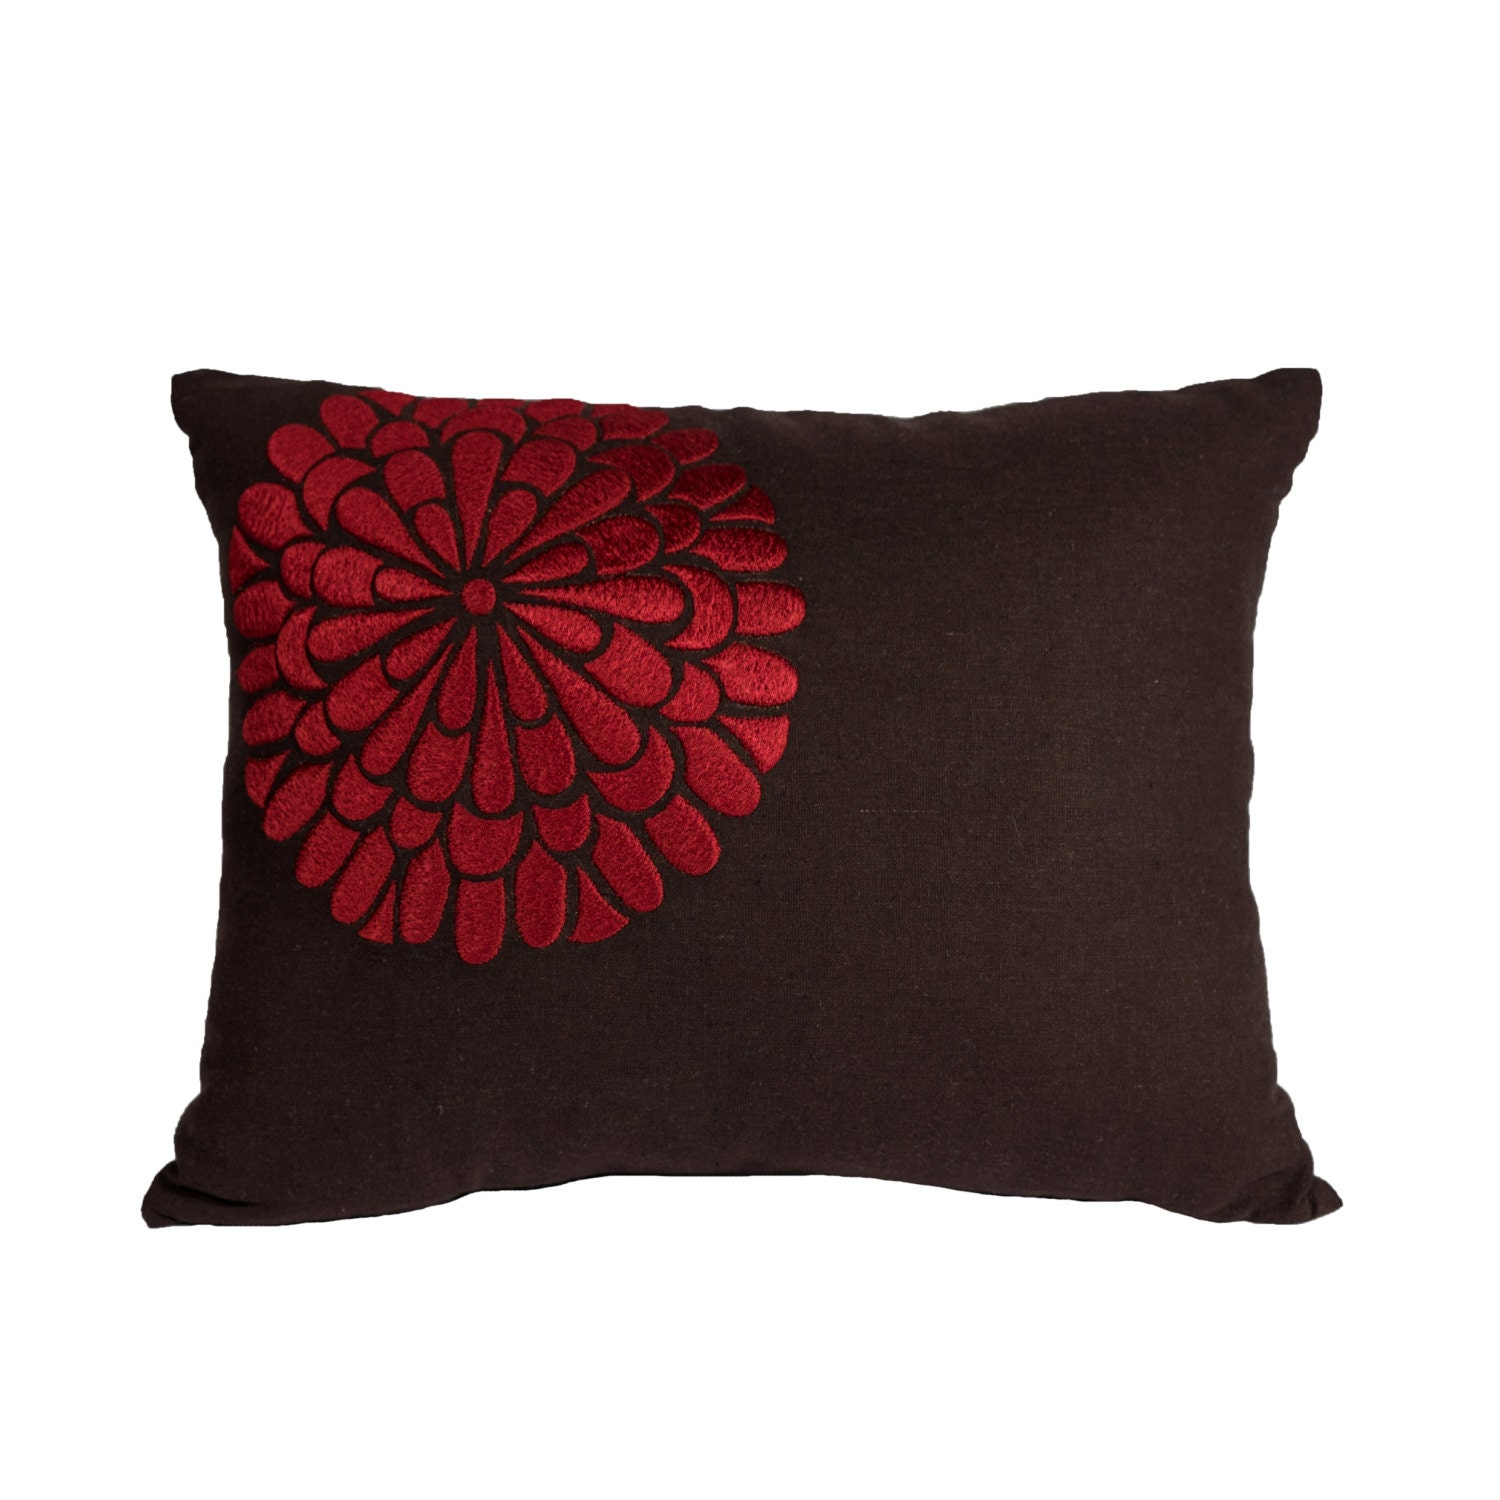 Dark Brown Throw Pillow : Floral Lumbar Pillow Cover Decorative Pillow Dark Brown